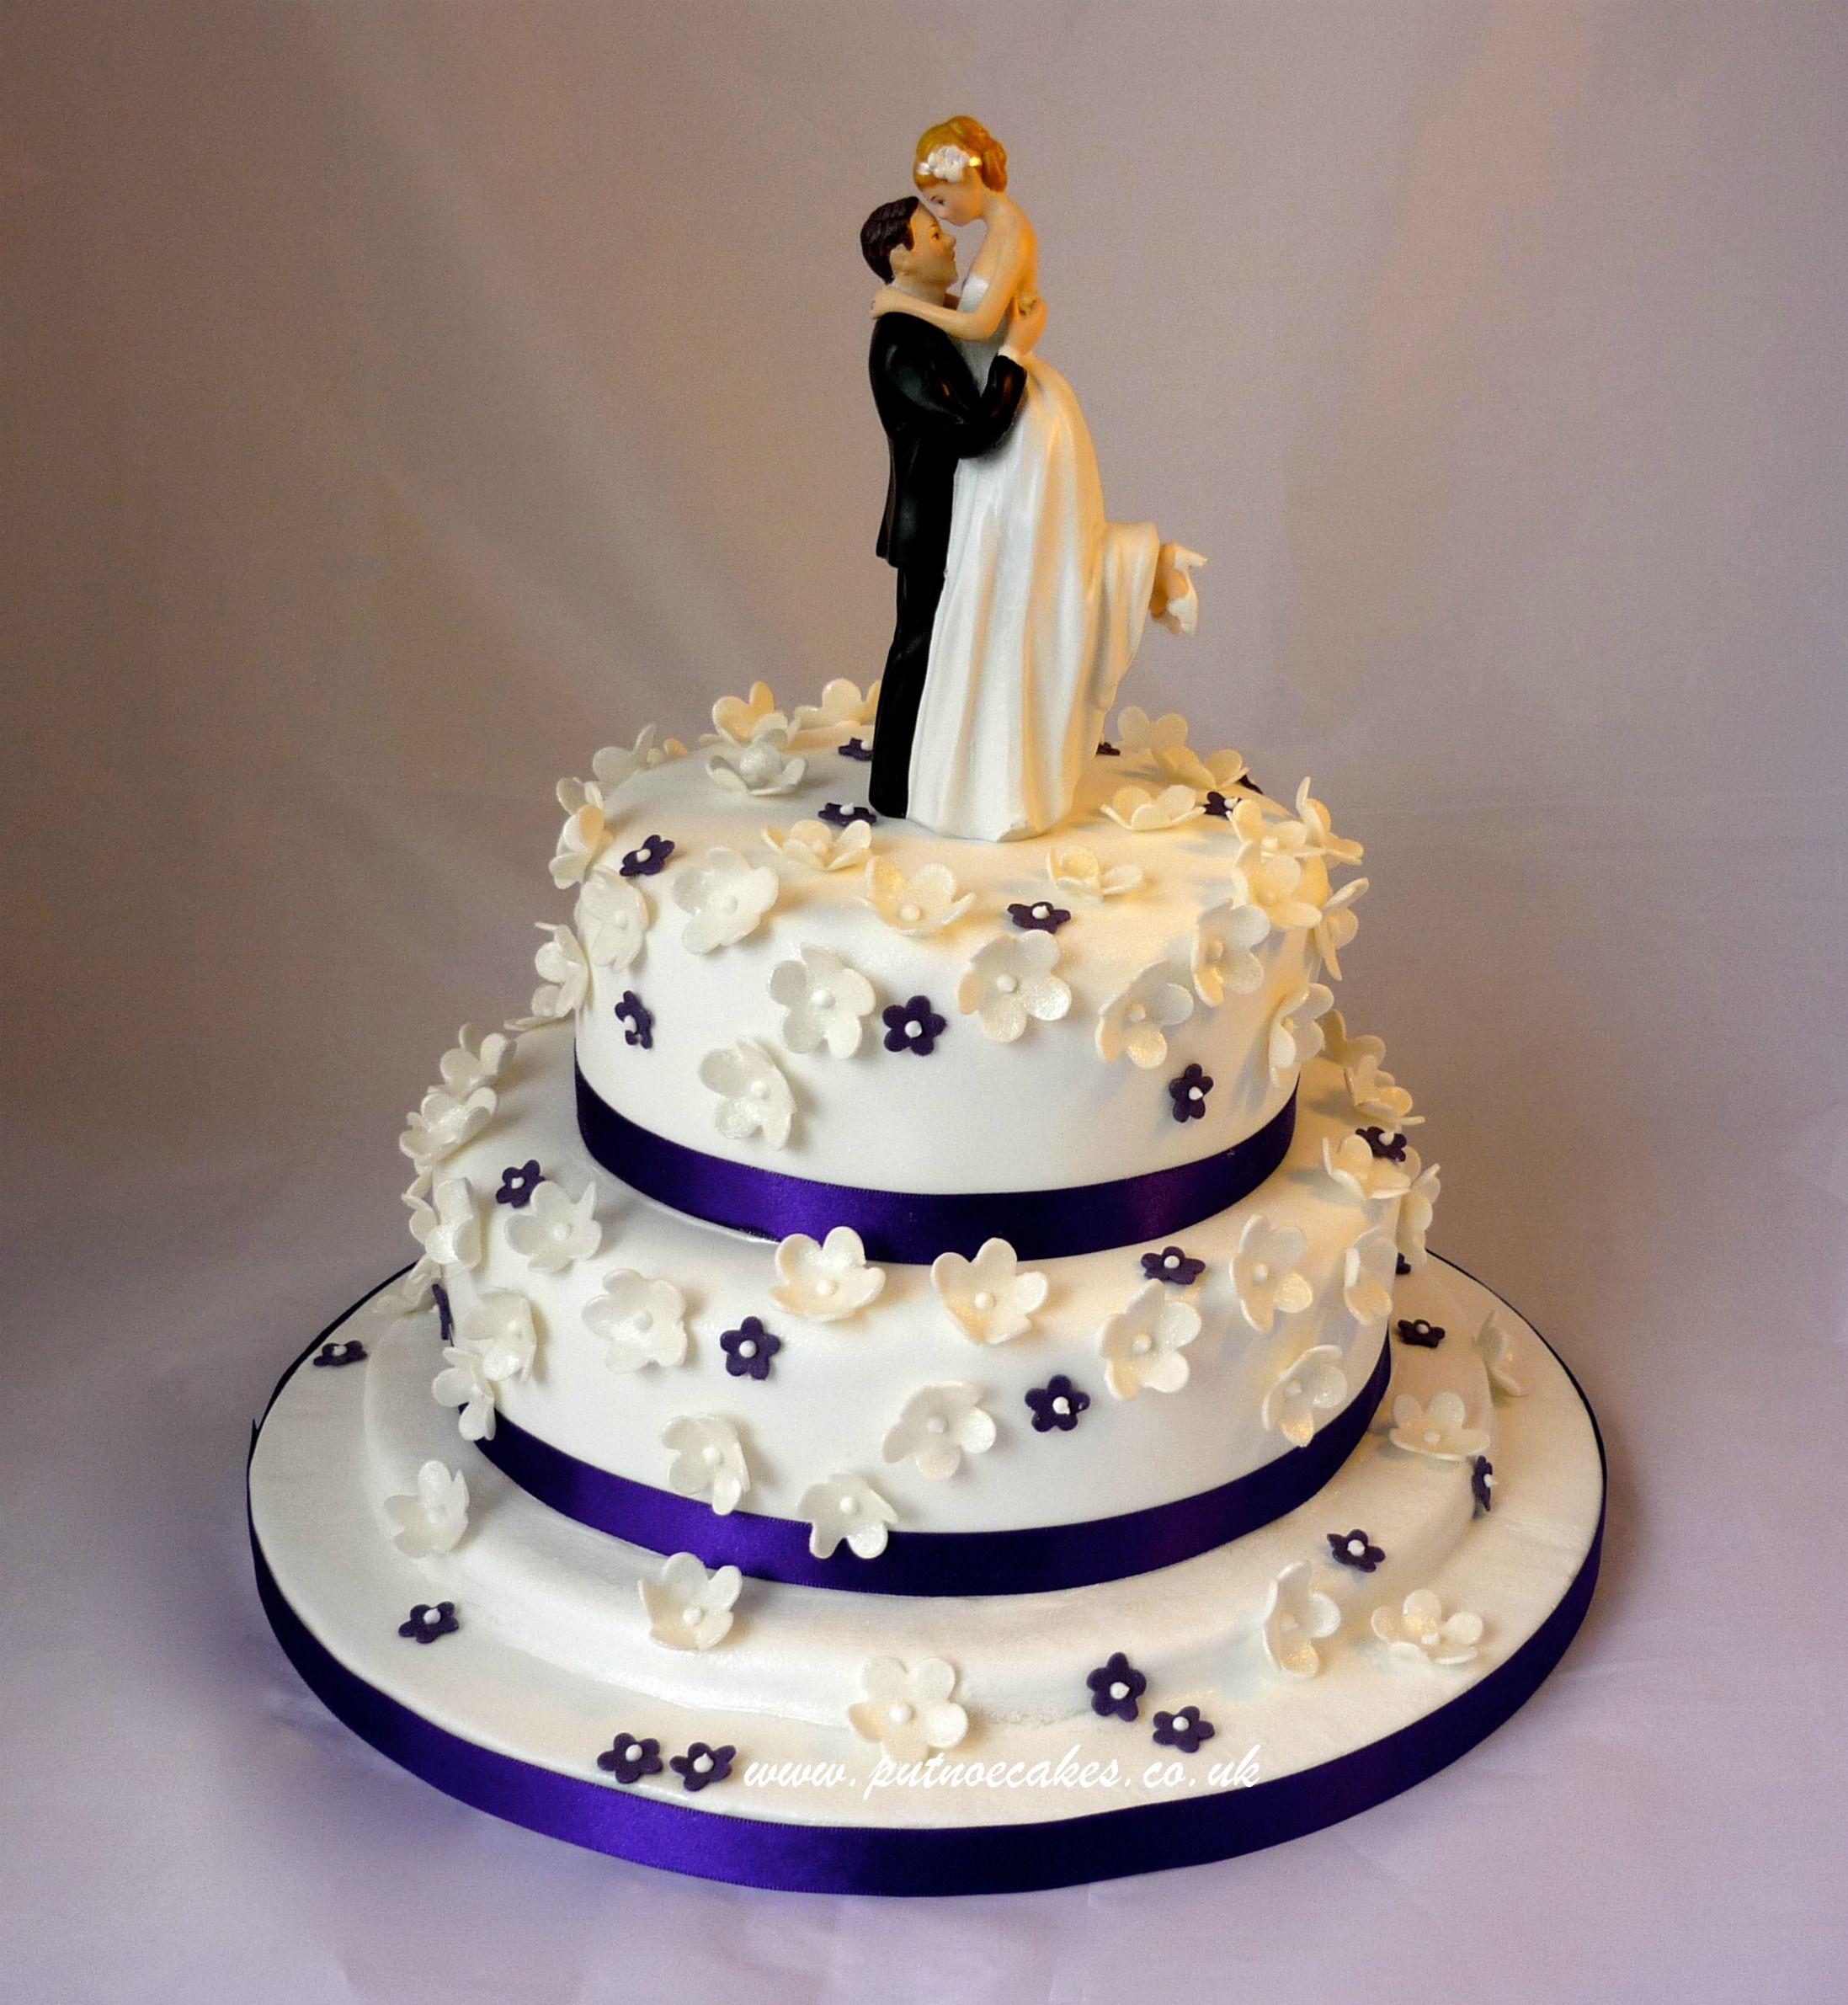 wedding cake ideas 2014 Posted by Neeta on Mar 7 2014 in